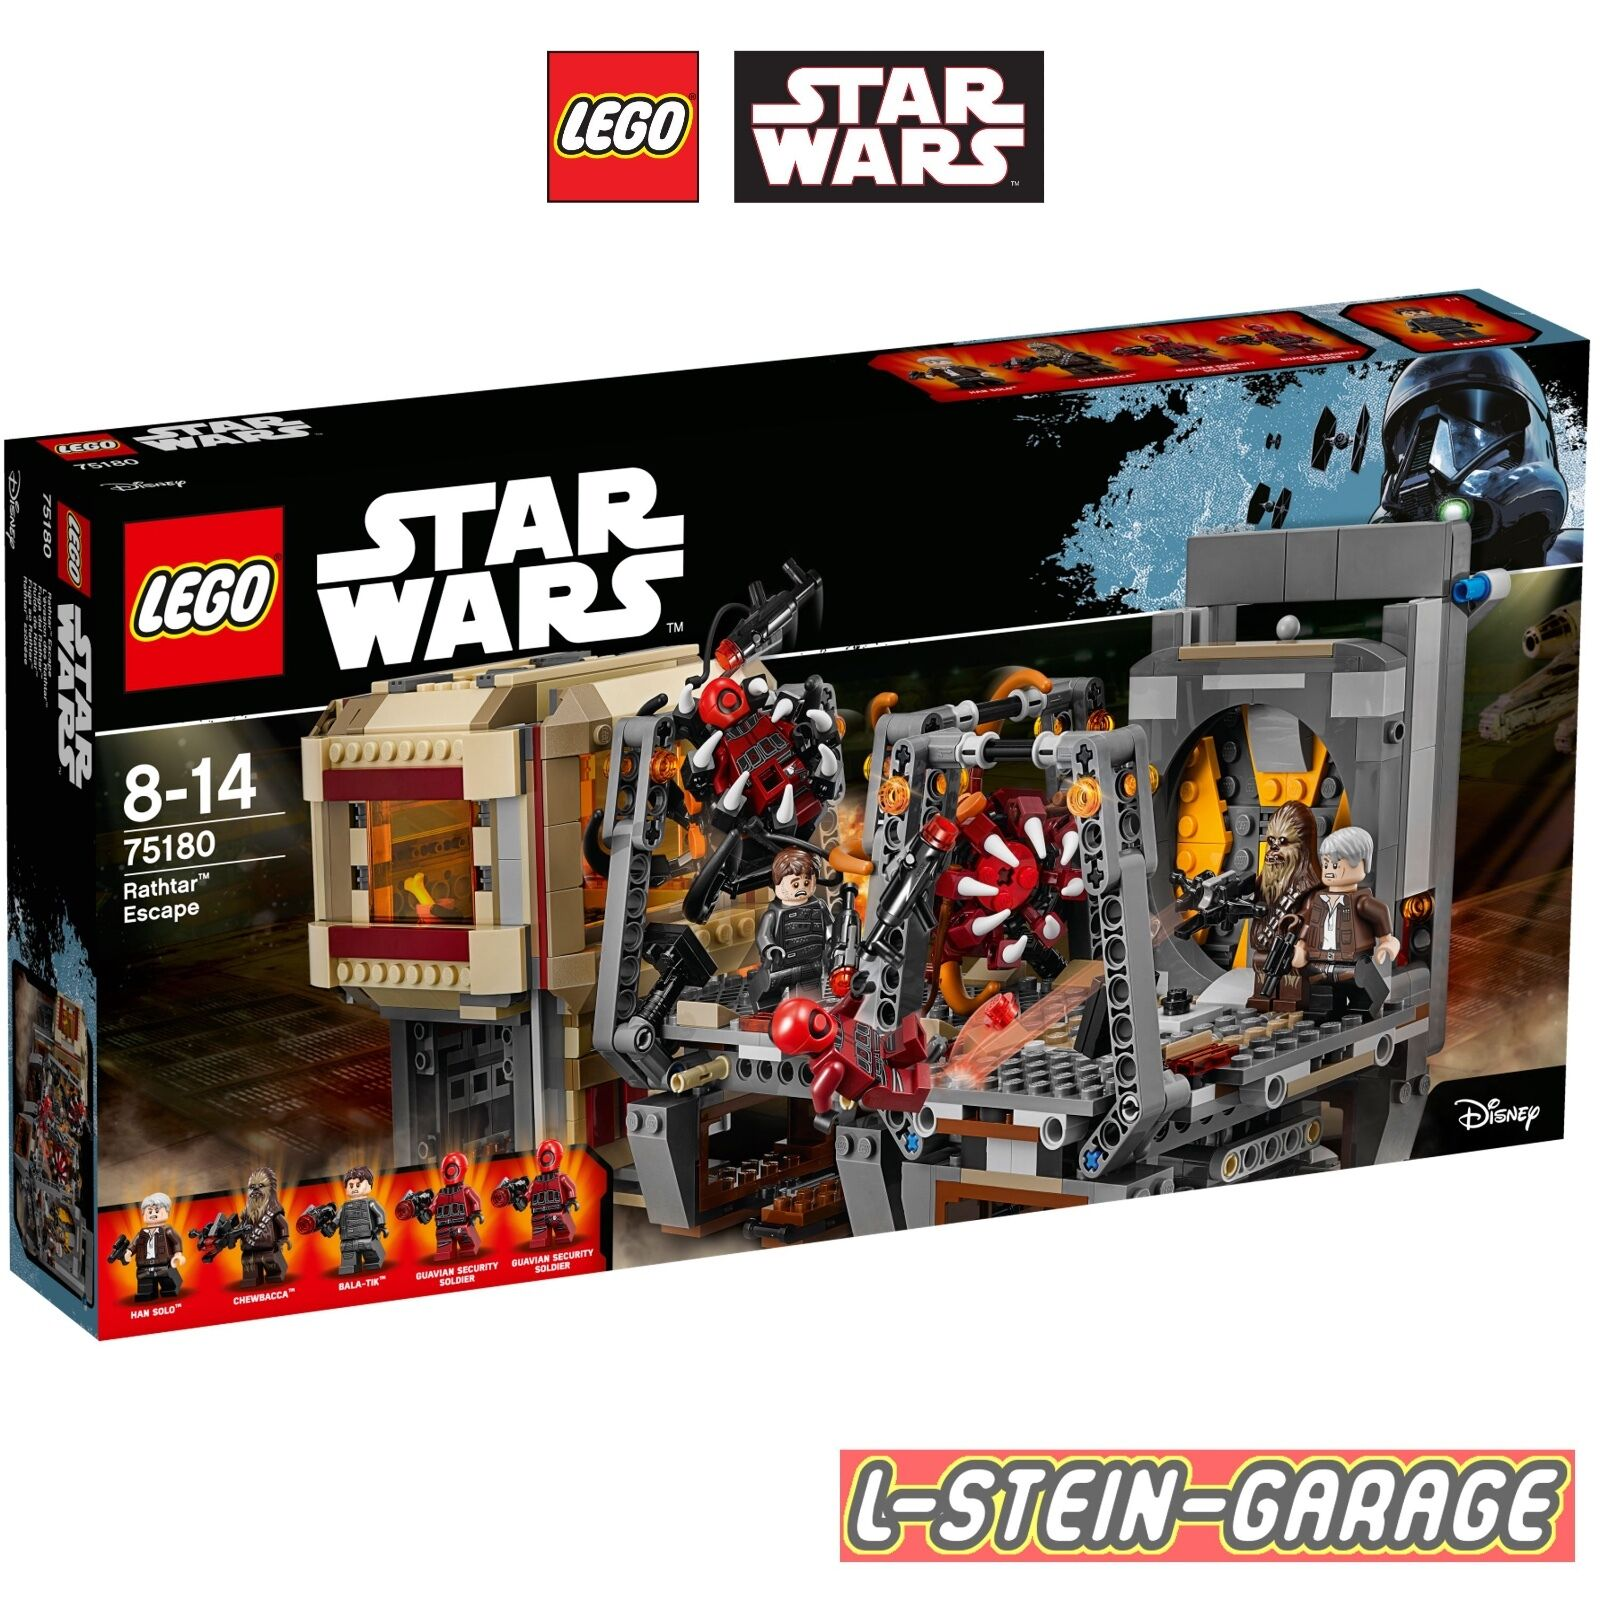 LEGO® Star Wars 75180 Rathtar™ Escape Neu & OVP